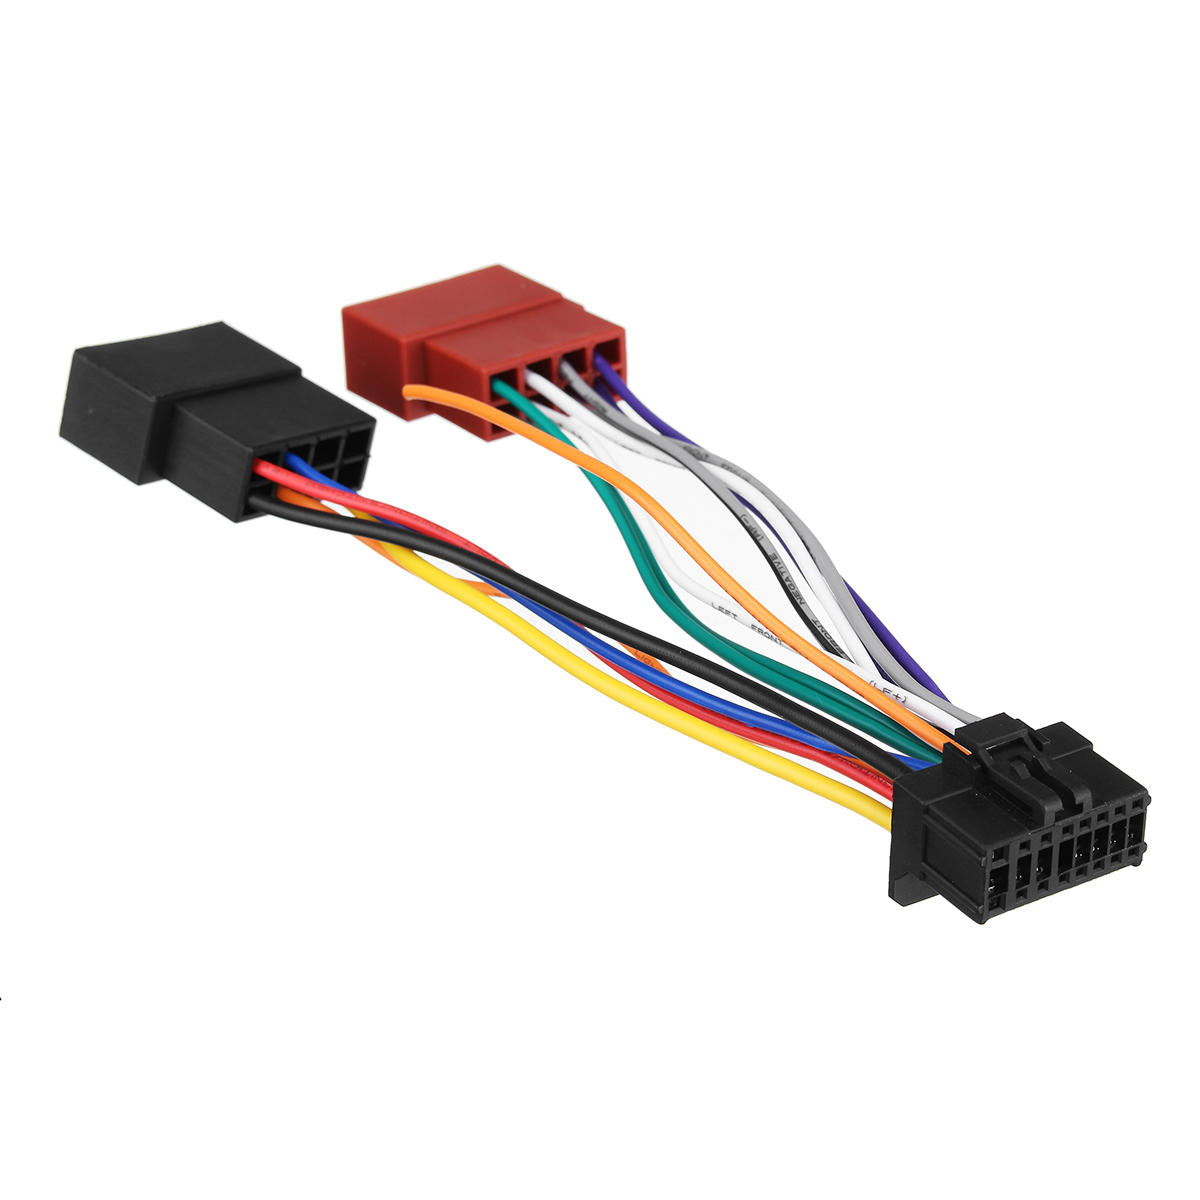 hight resolution of car stereo radio iso wiring harness connector 16 pin pi100 for stereo radio wire harness connector